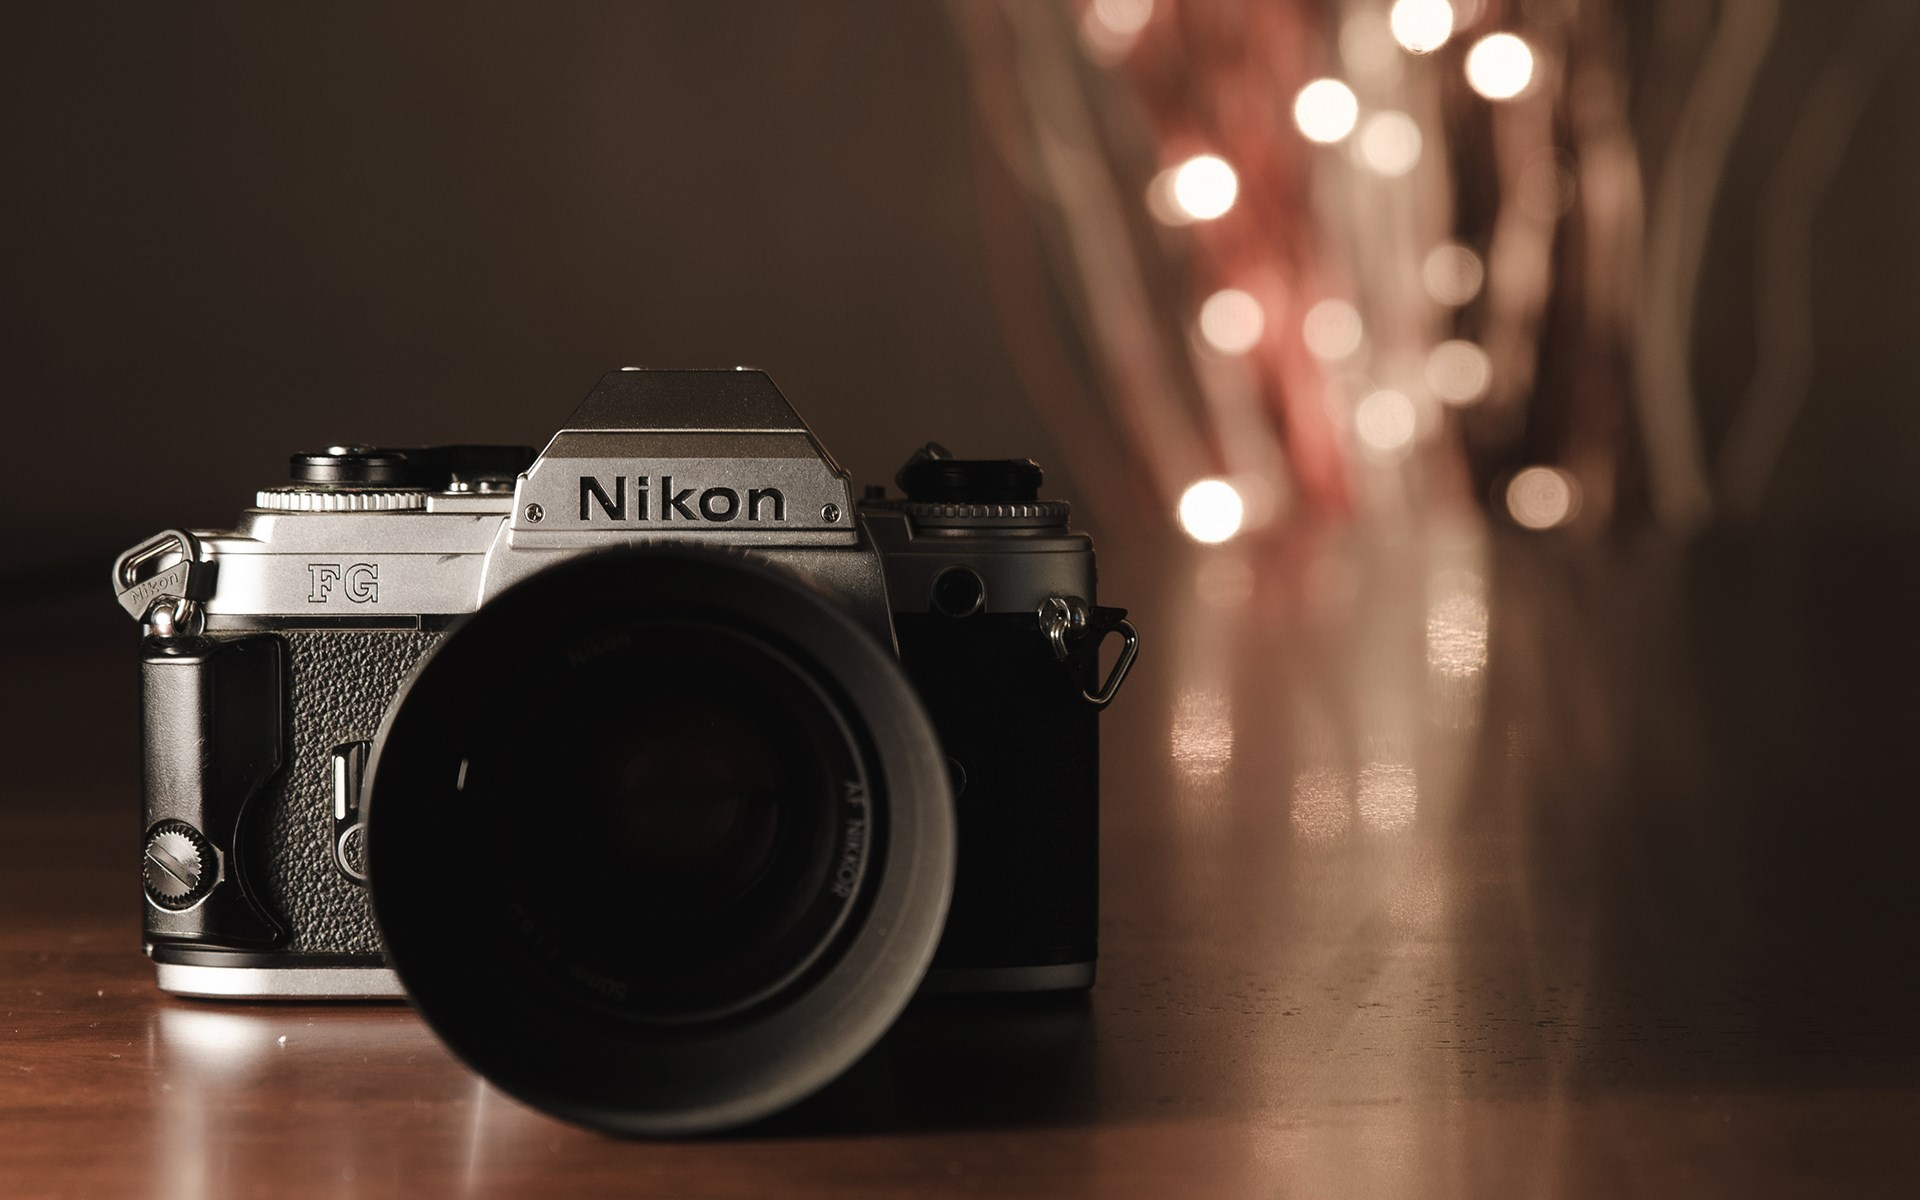 Nikon Old SLR Camera Photo HD Wallpaper